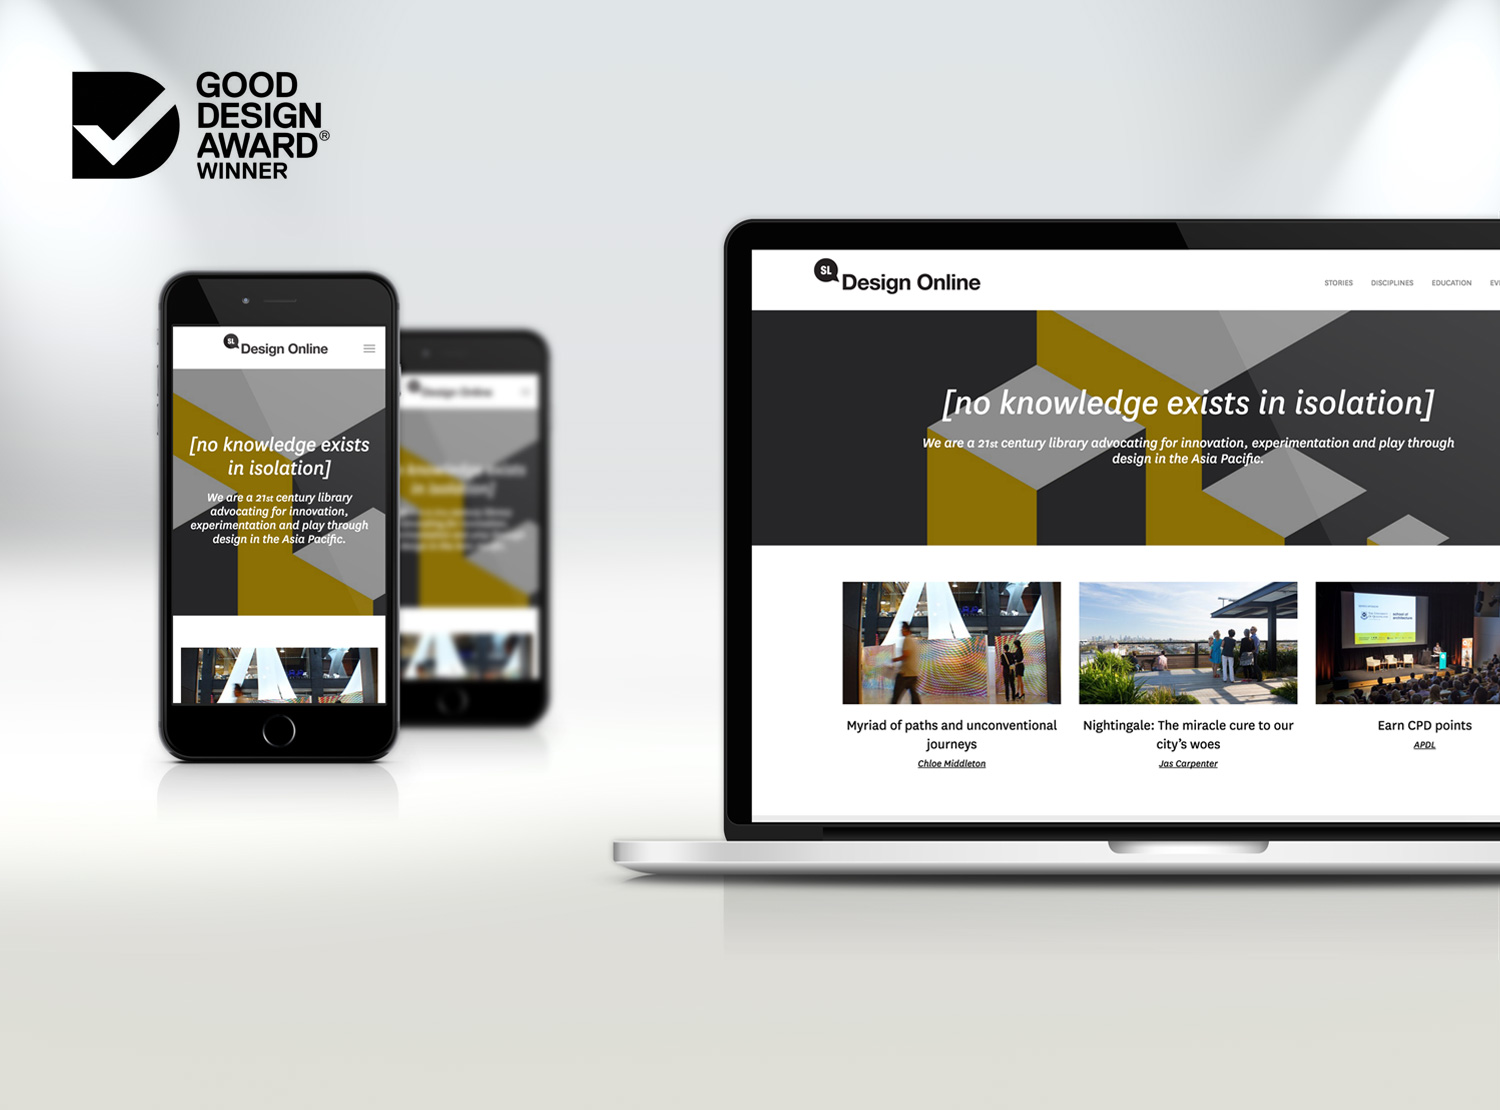 Good Design Award 2018 awarded to Design Online